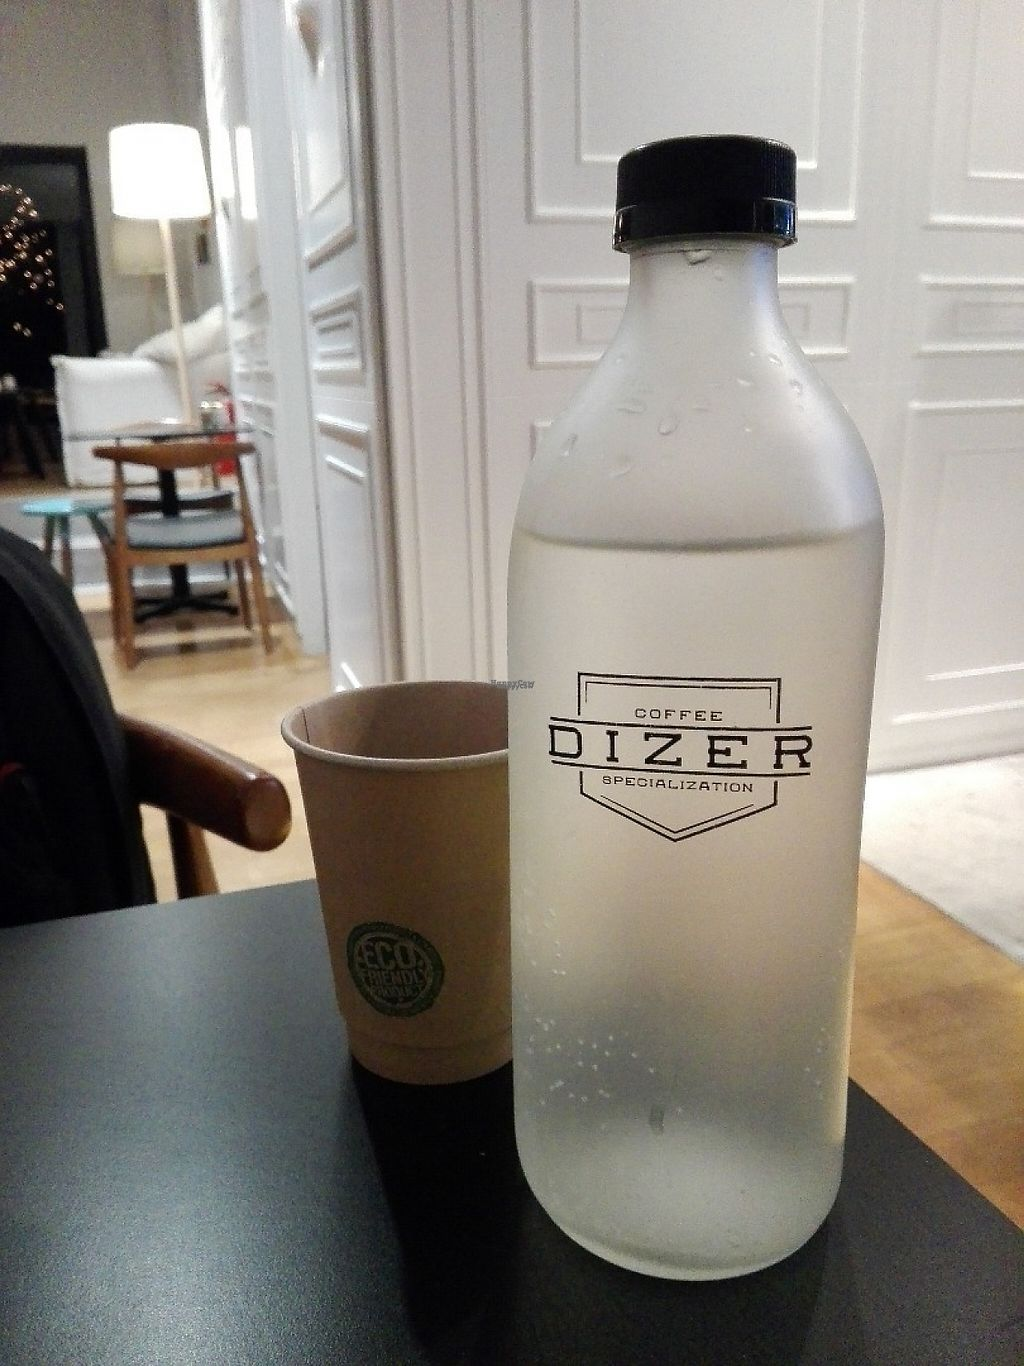 "Photo of Dizer Coffee Specialization  by <a href=""/members/profile/ElisaGR"">ElisaGR</a> <br/>Zero waste - Water bottle